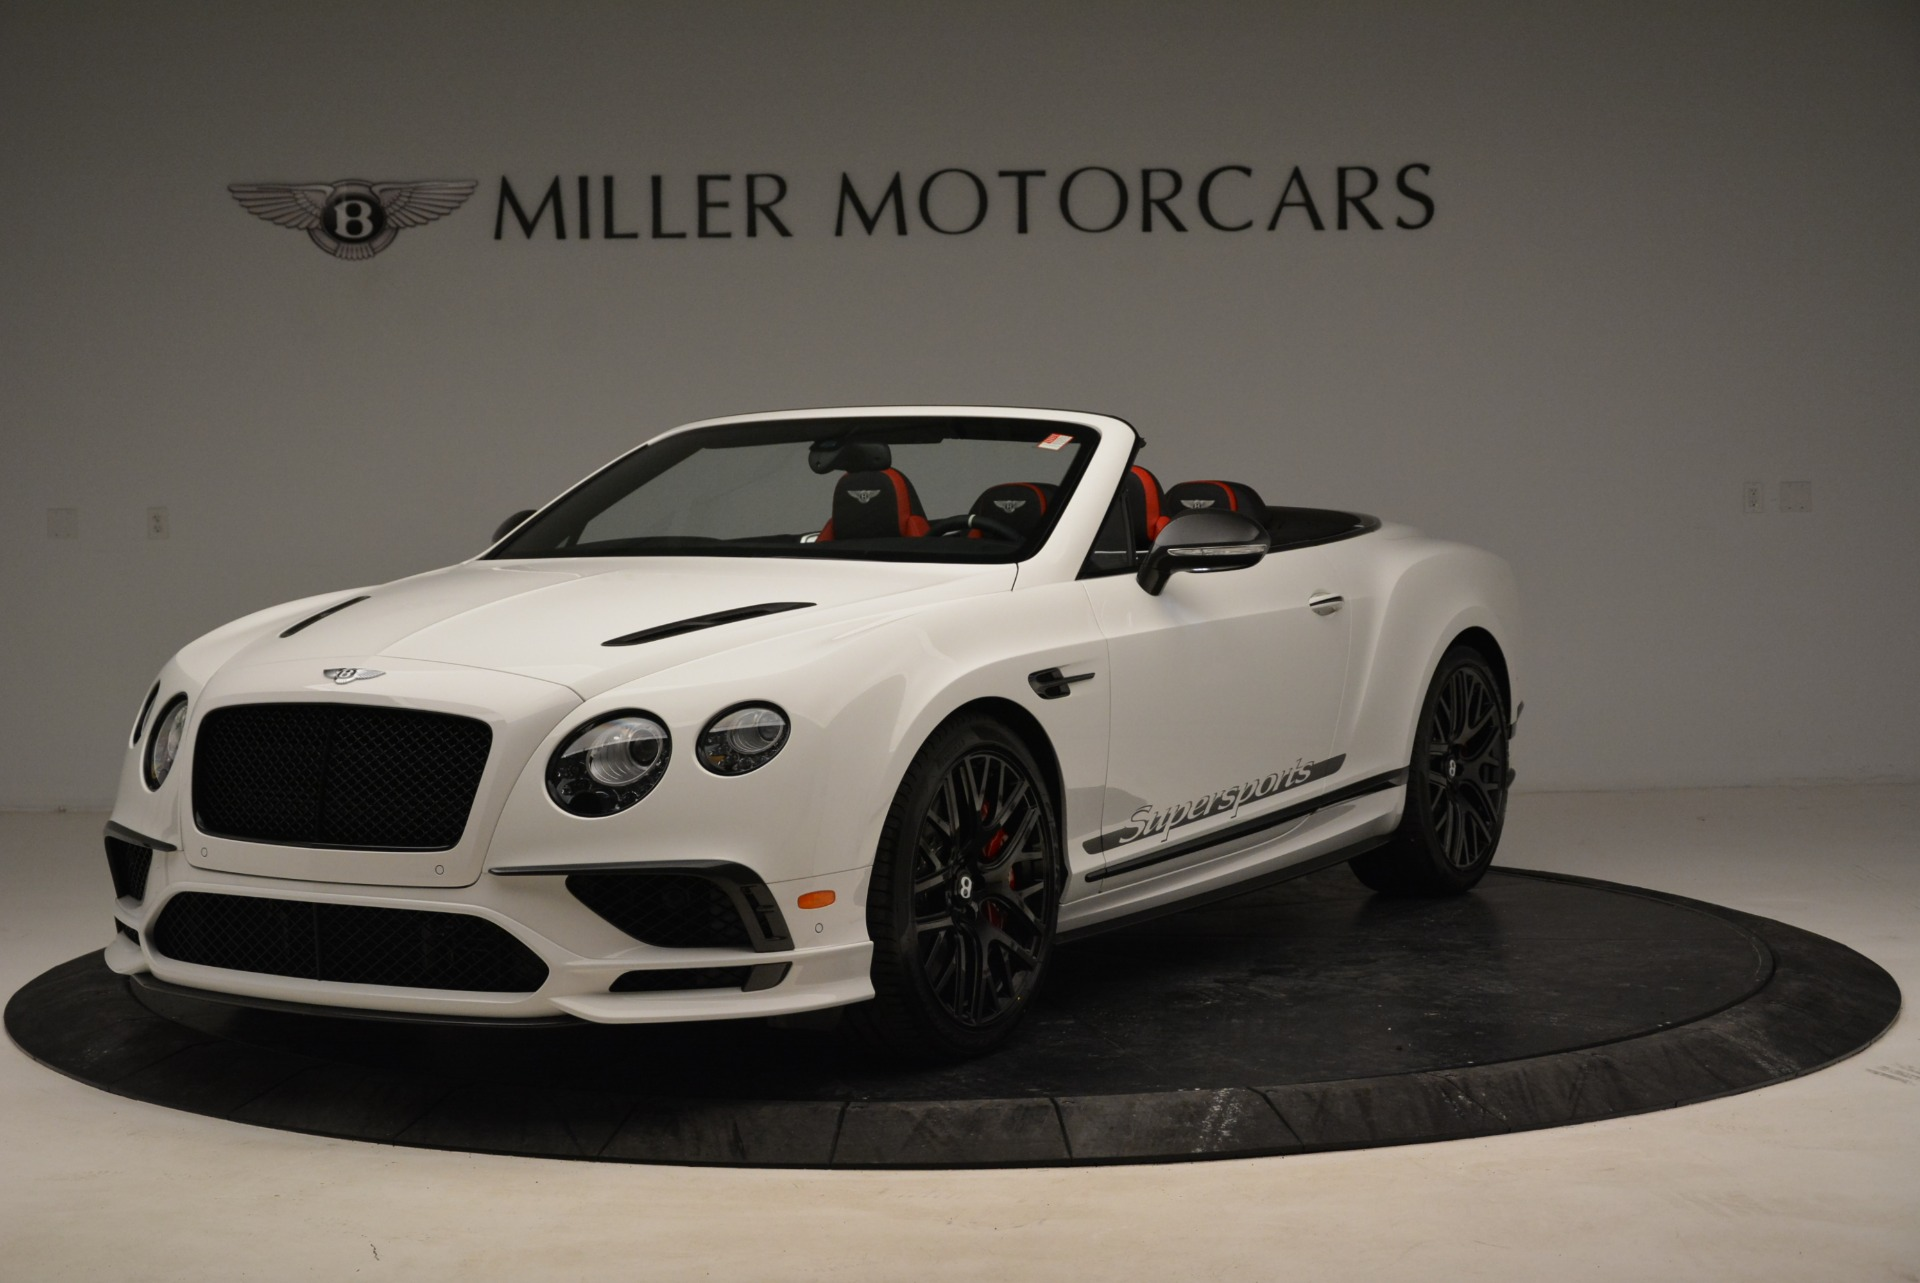 Used 2018 Bentley Continental GTC Supersports Convertible for sale Sold at Rolls-Royce Motor Cars Greenwich in Greenwich CT 06830 1